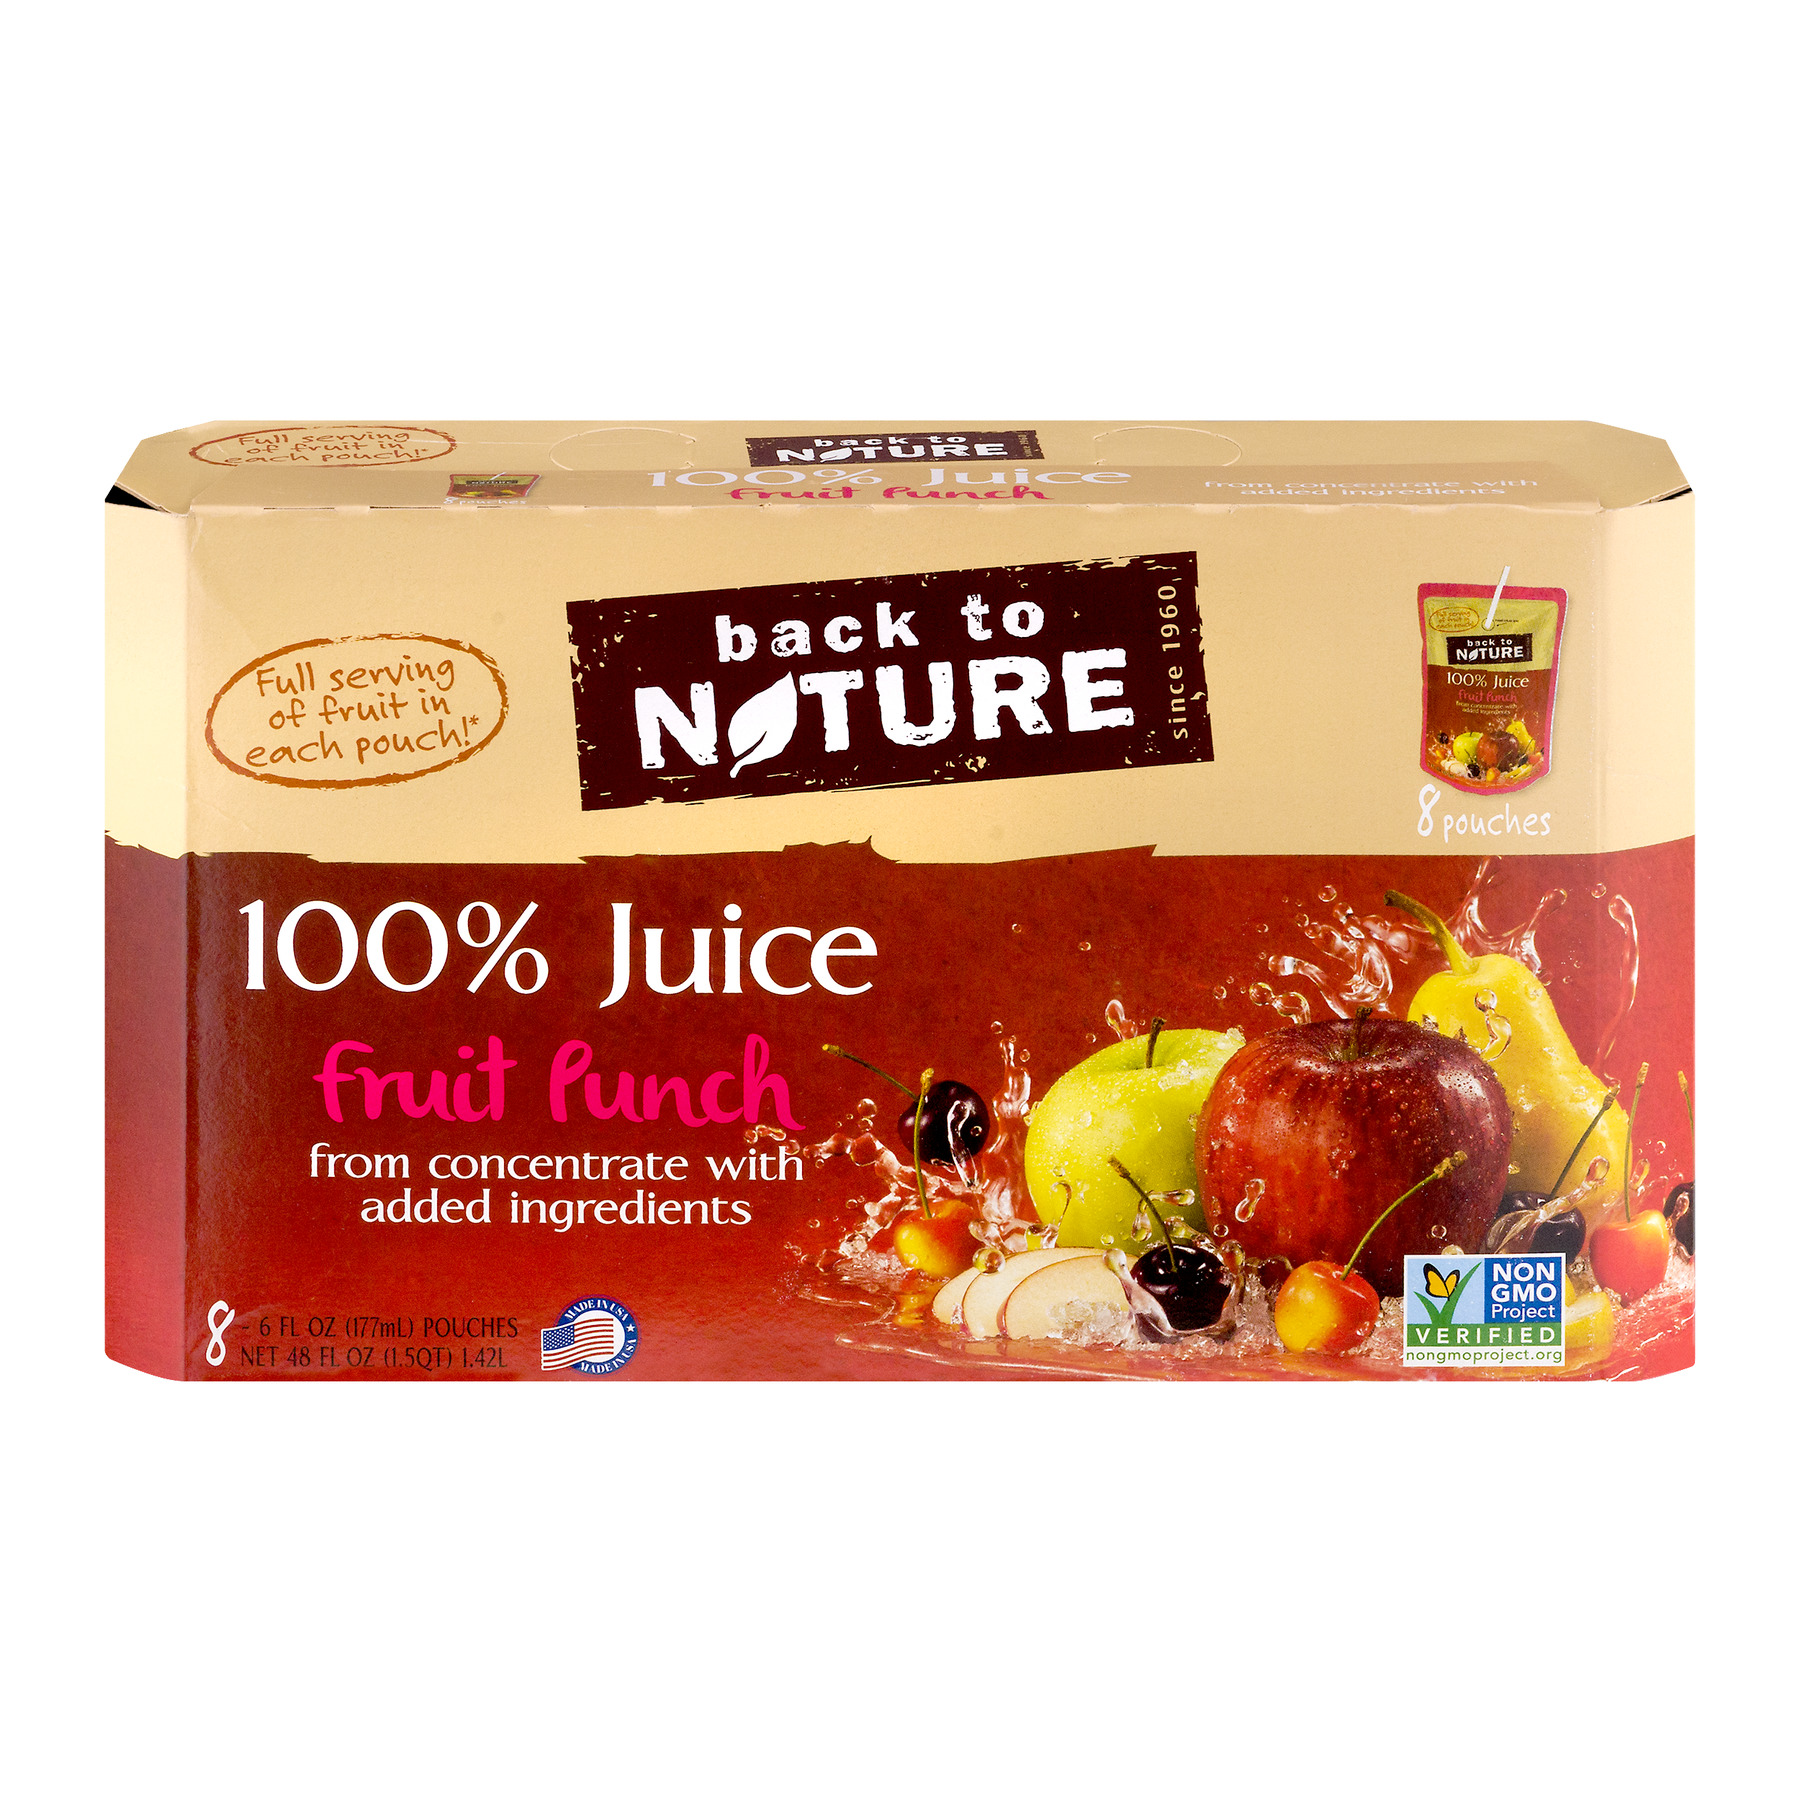 Back to Nature 100% Juice, Fruit Punch, 6 Fl Oz, 8 Count